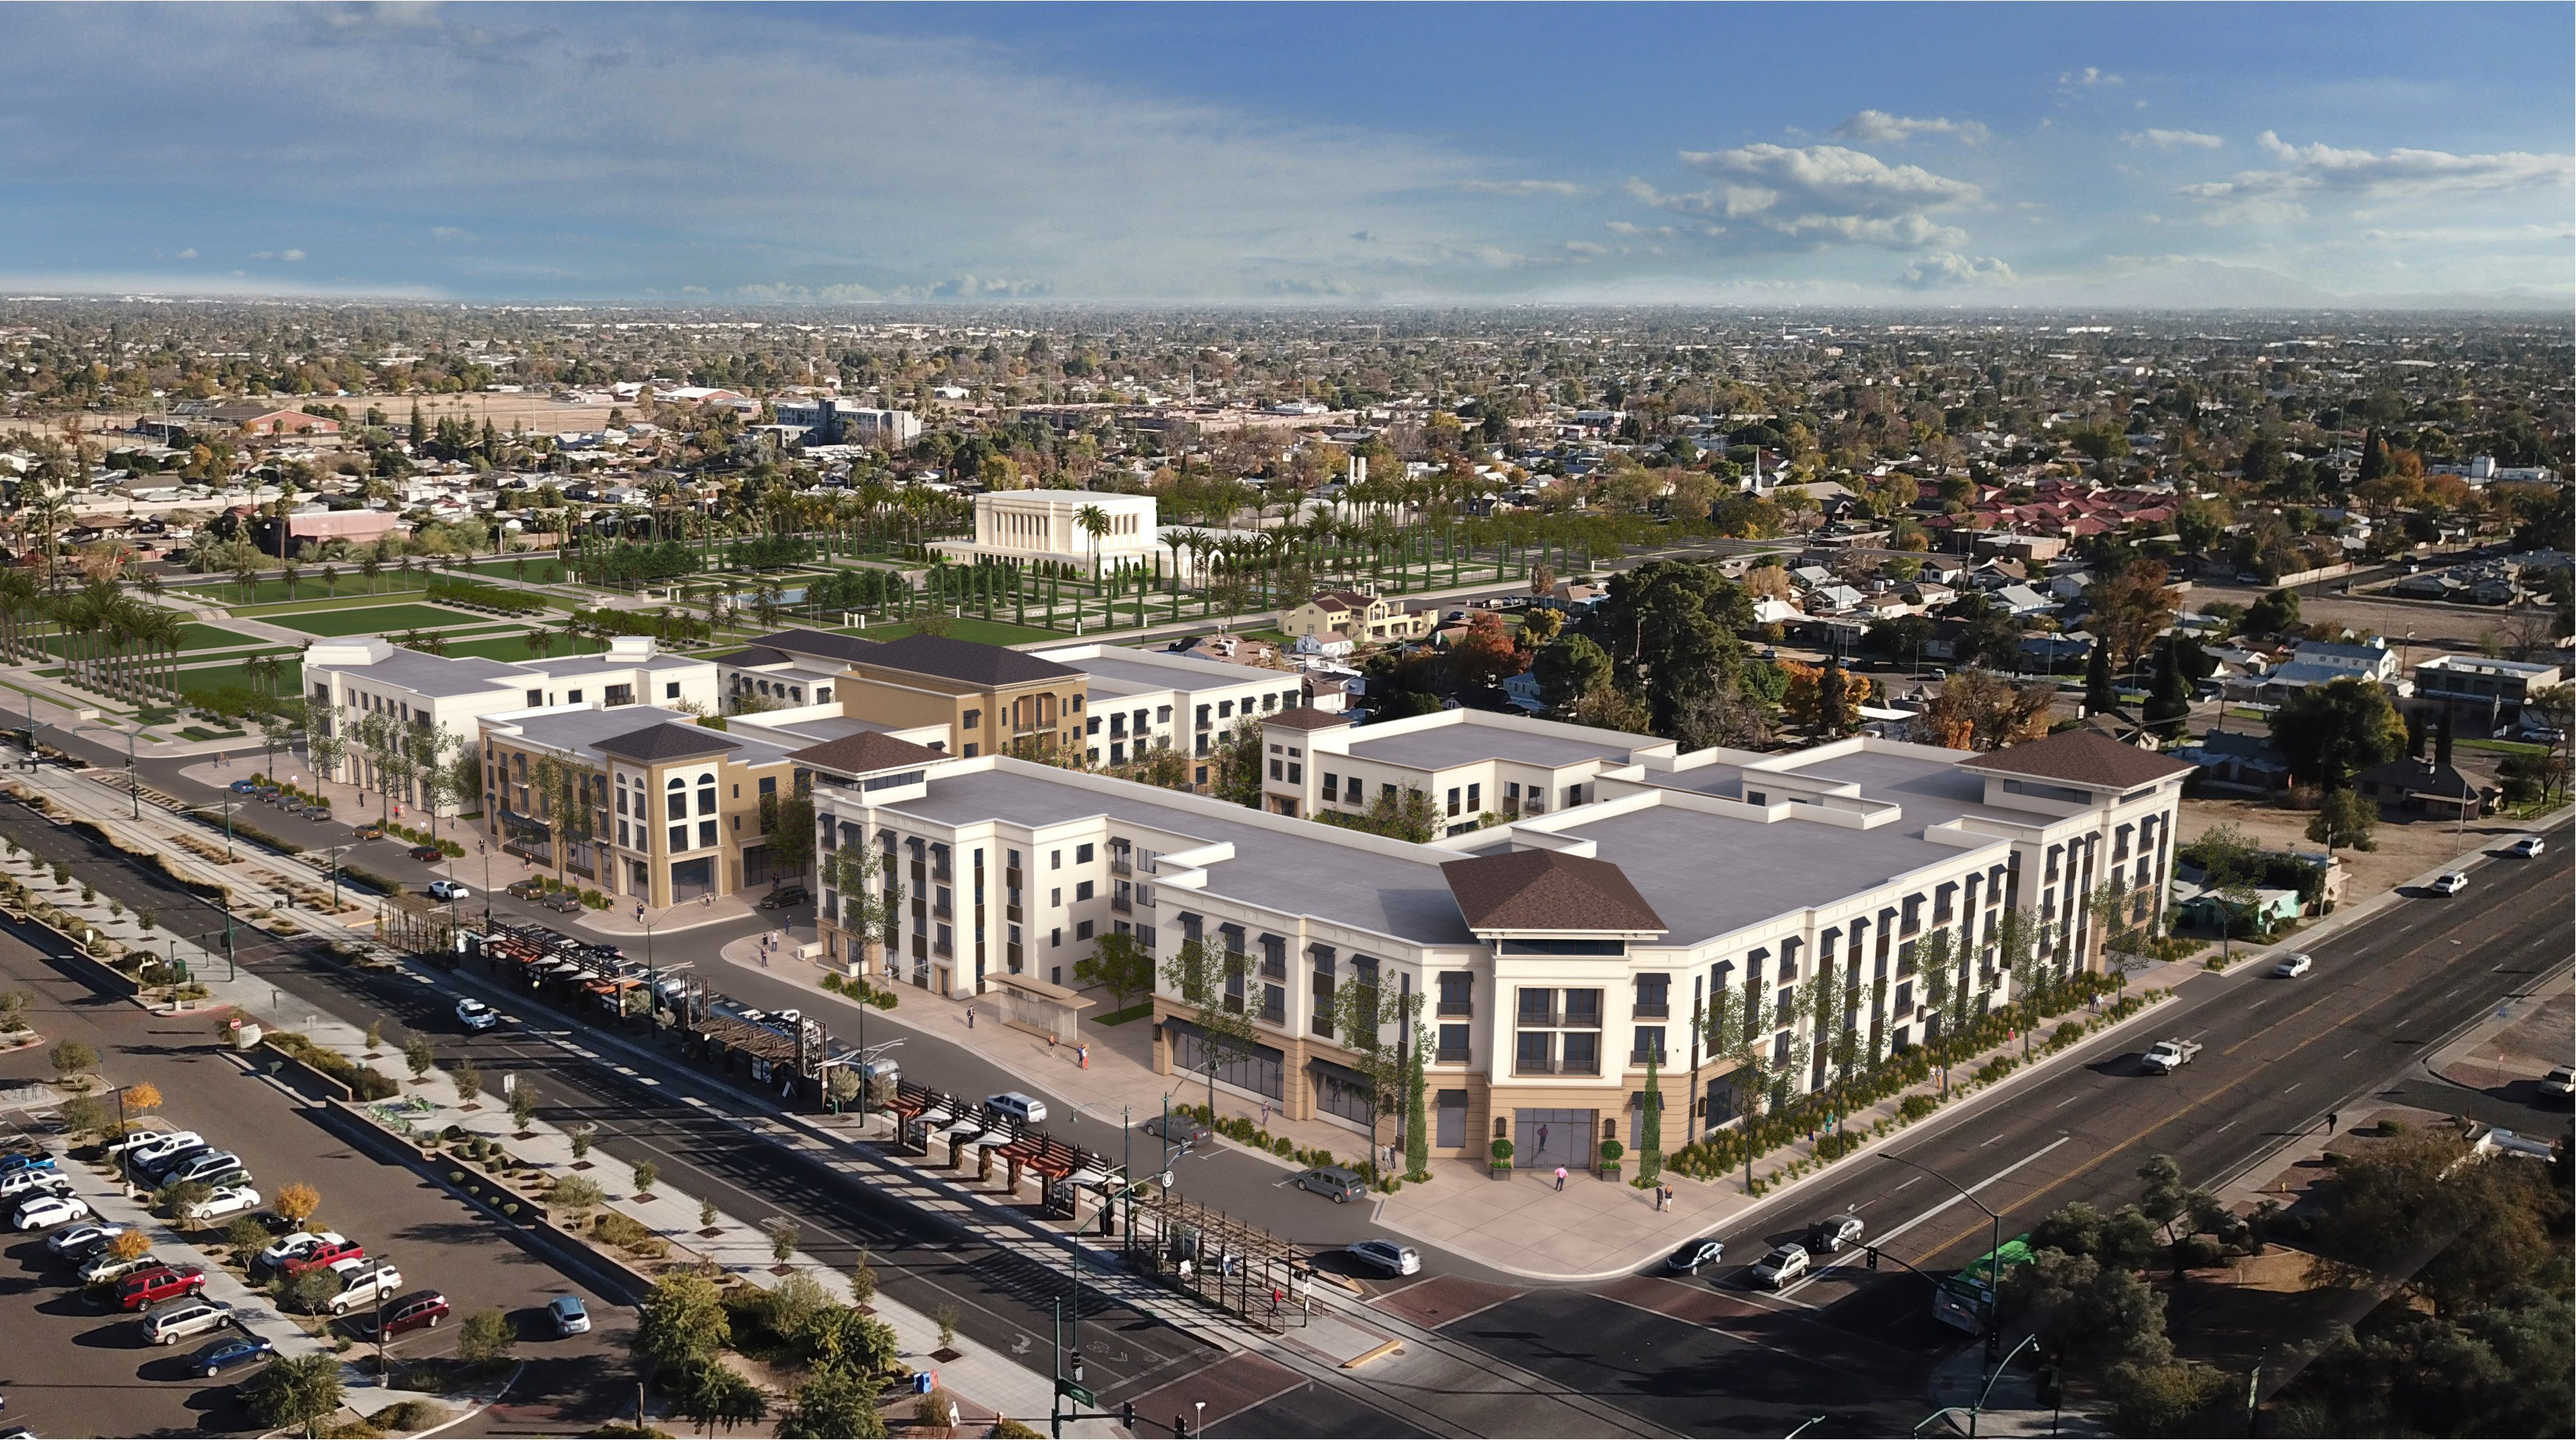 Plans have been announced to redevelop 4.5 acres of land near the Mesa Arizona Temple. This rendering offers a southeast view of the mixed-use community.